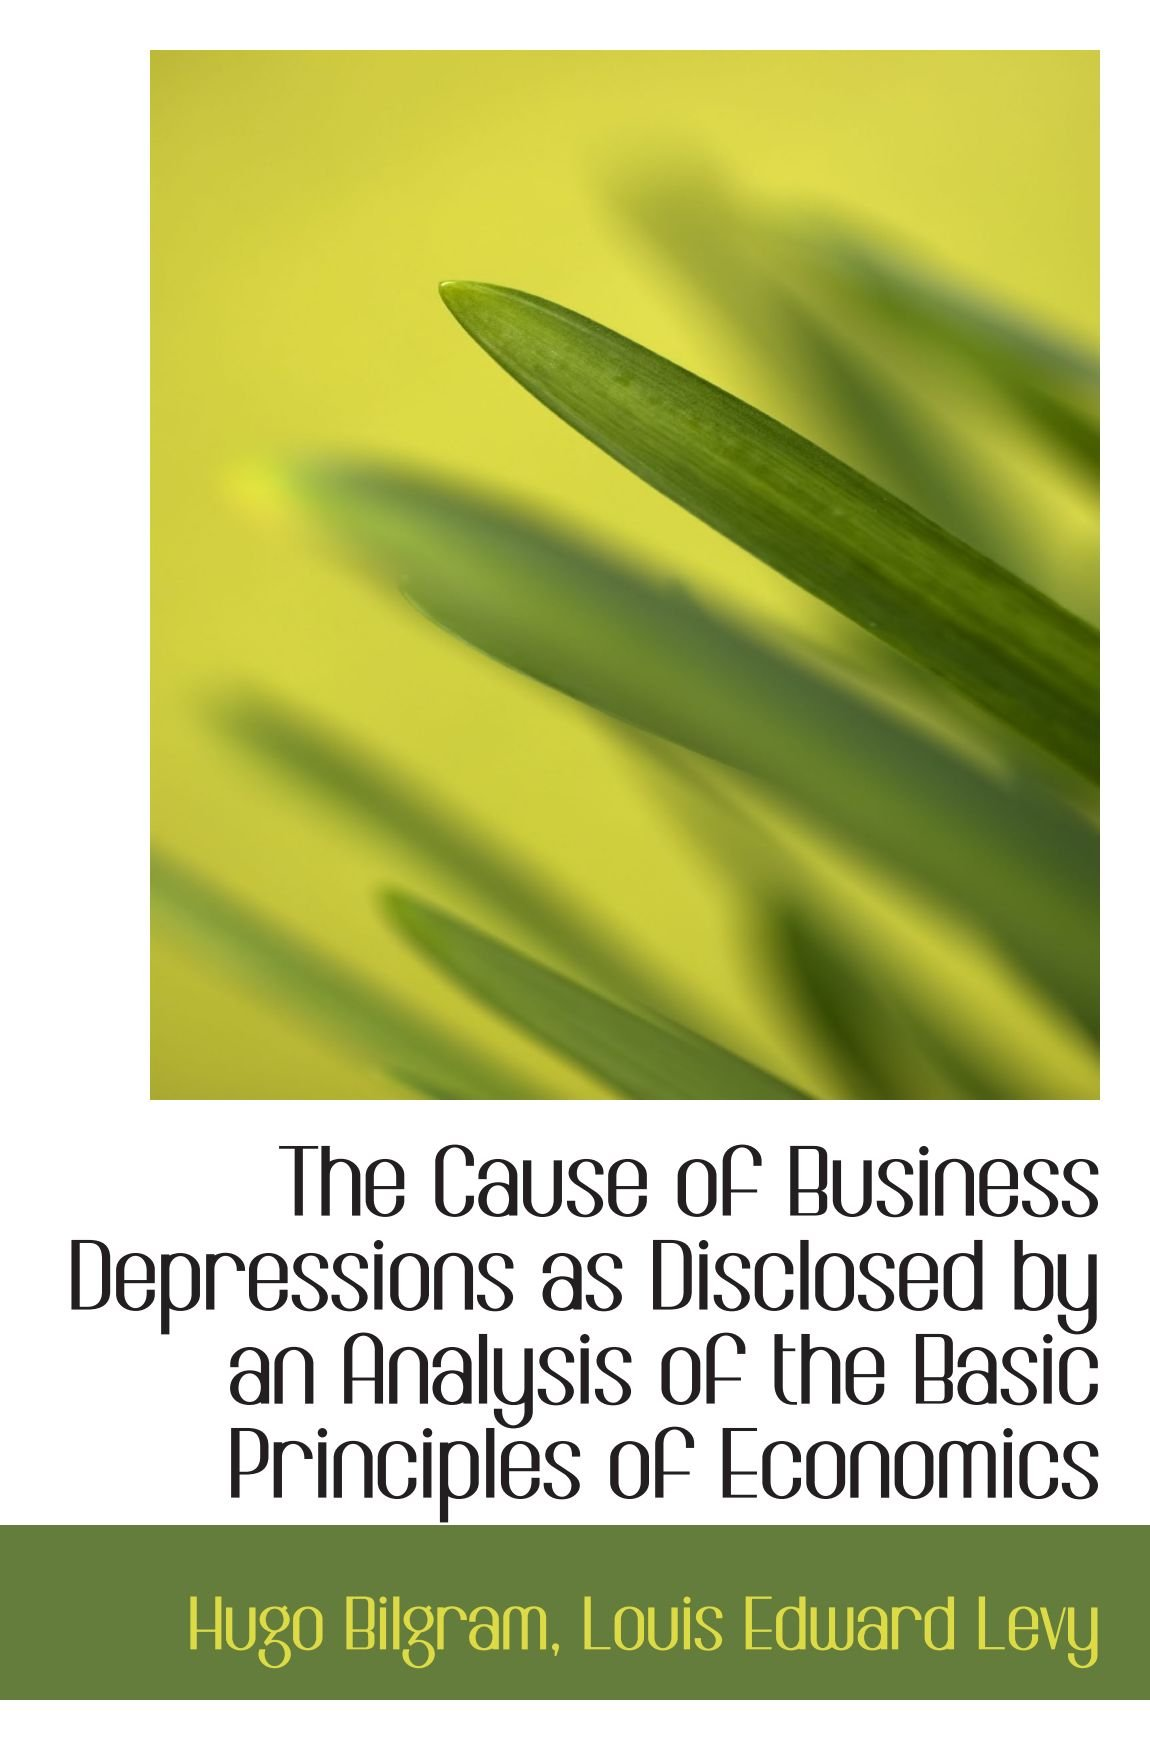 The Cause of Business Depressions as Disclosed by an Analysis of the Basic Principles of Economics pdf